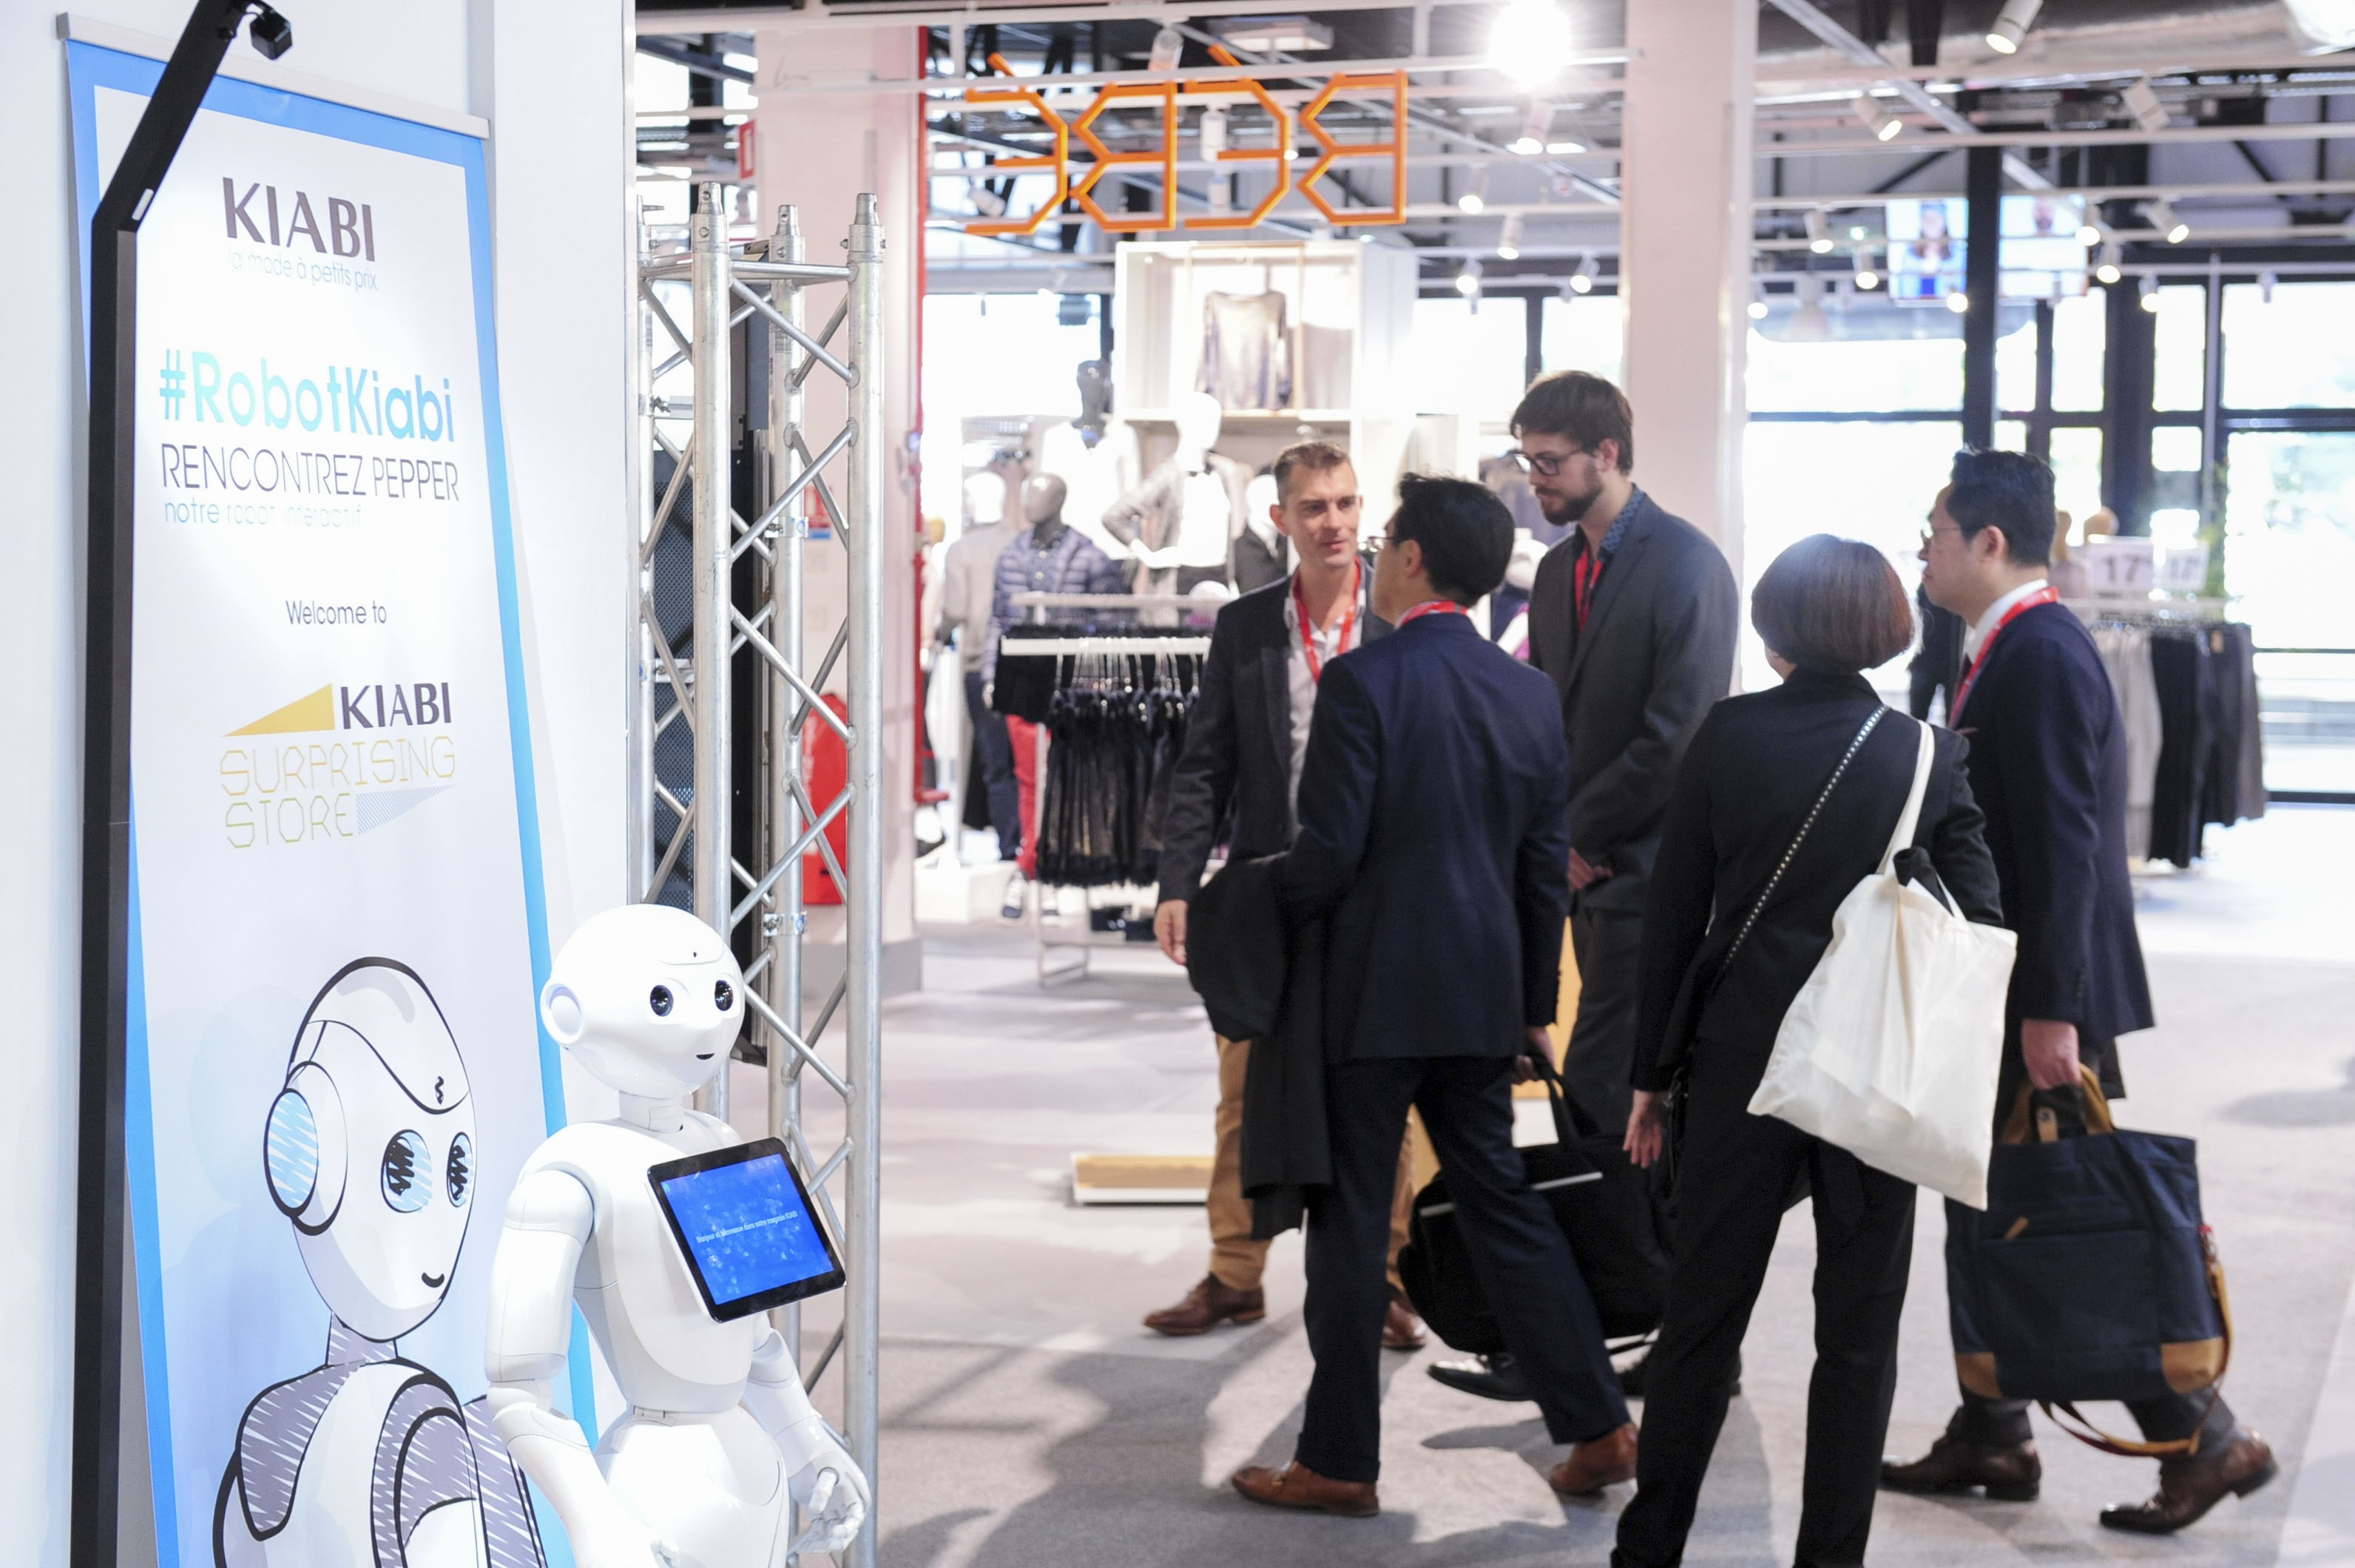 Attendees are greeted by the Kiabi Robot at last year's MAPIC event.